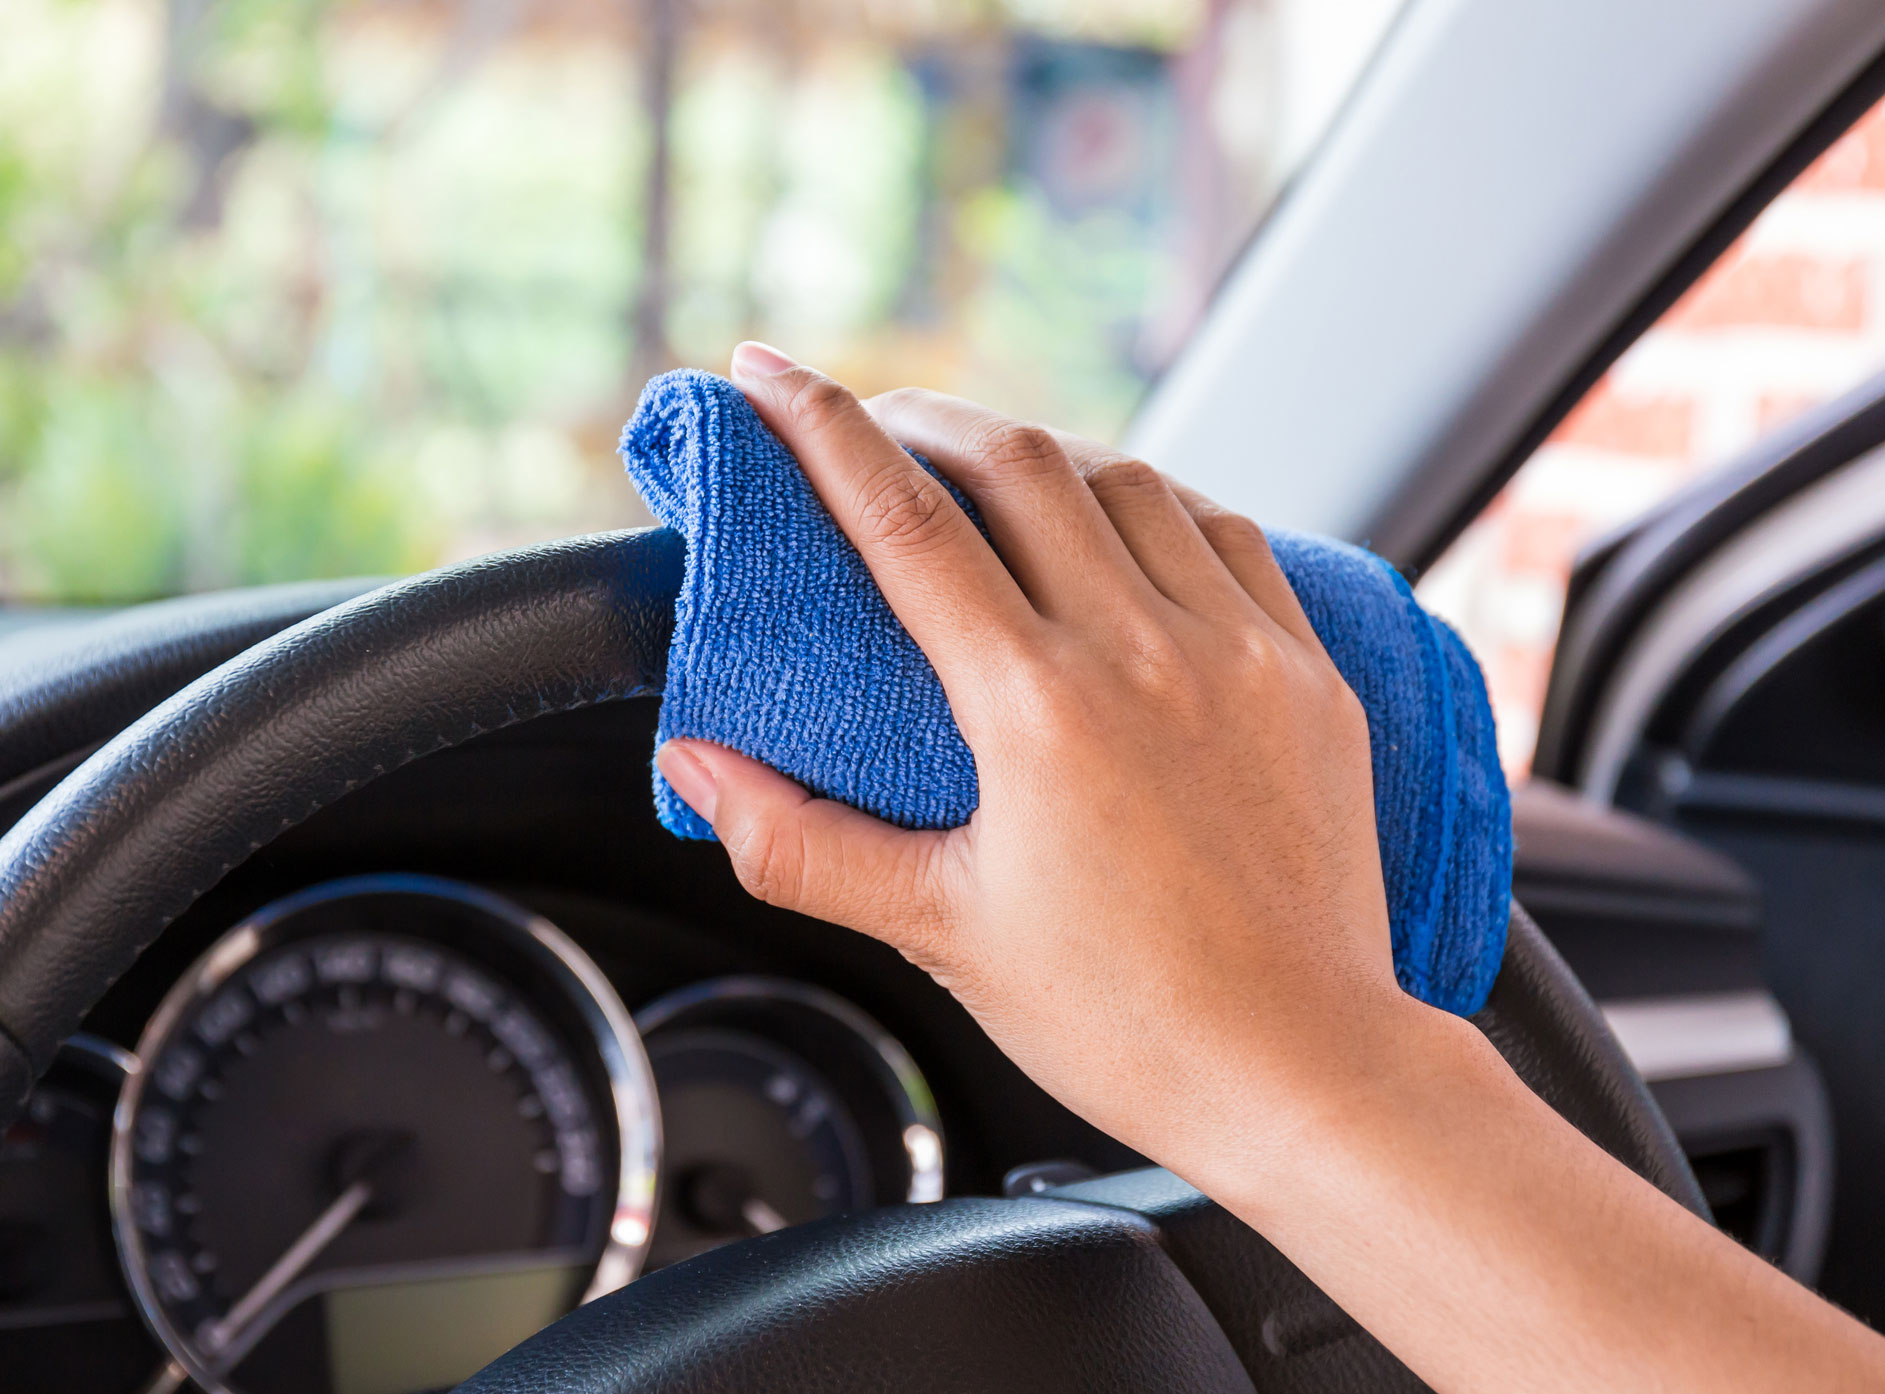 Why your car could be a petri dish for coronavirus and how to clean it safely